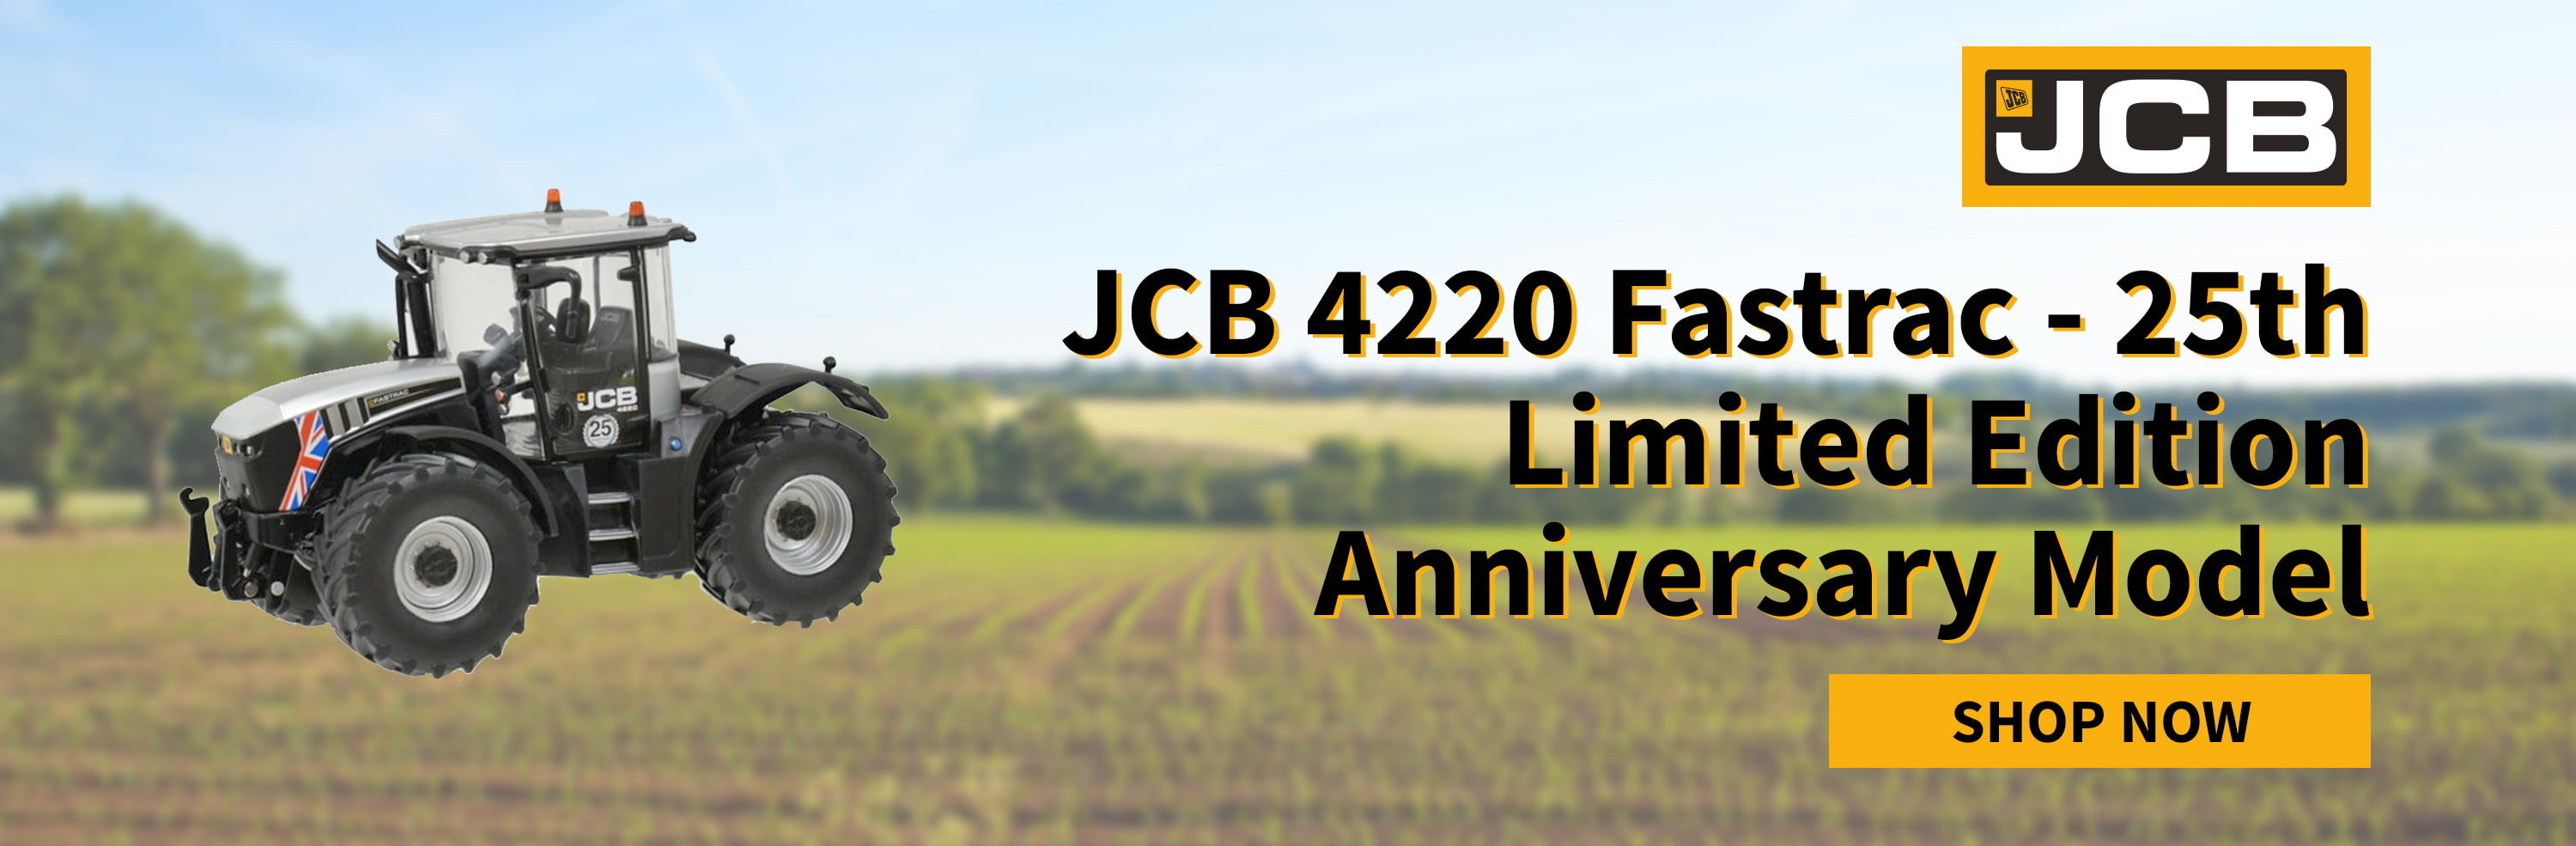 JCB 4220 Fastrac - 25th Limited Edition Anniversary Model available from SPS Parts